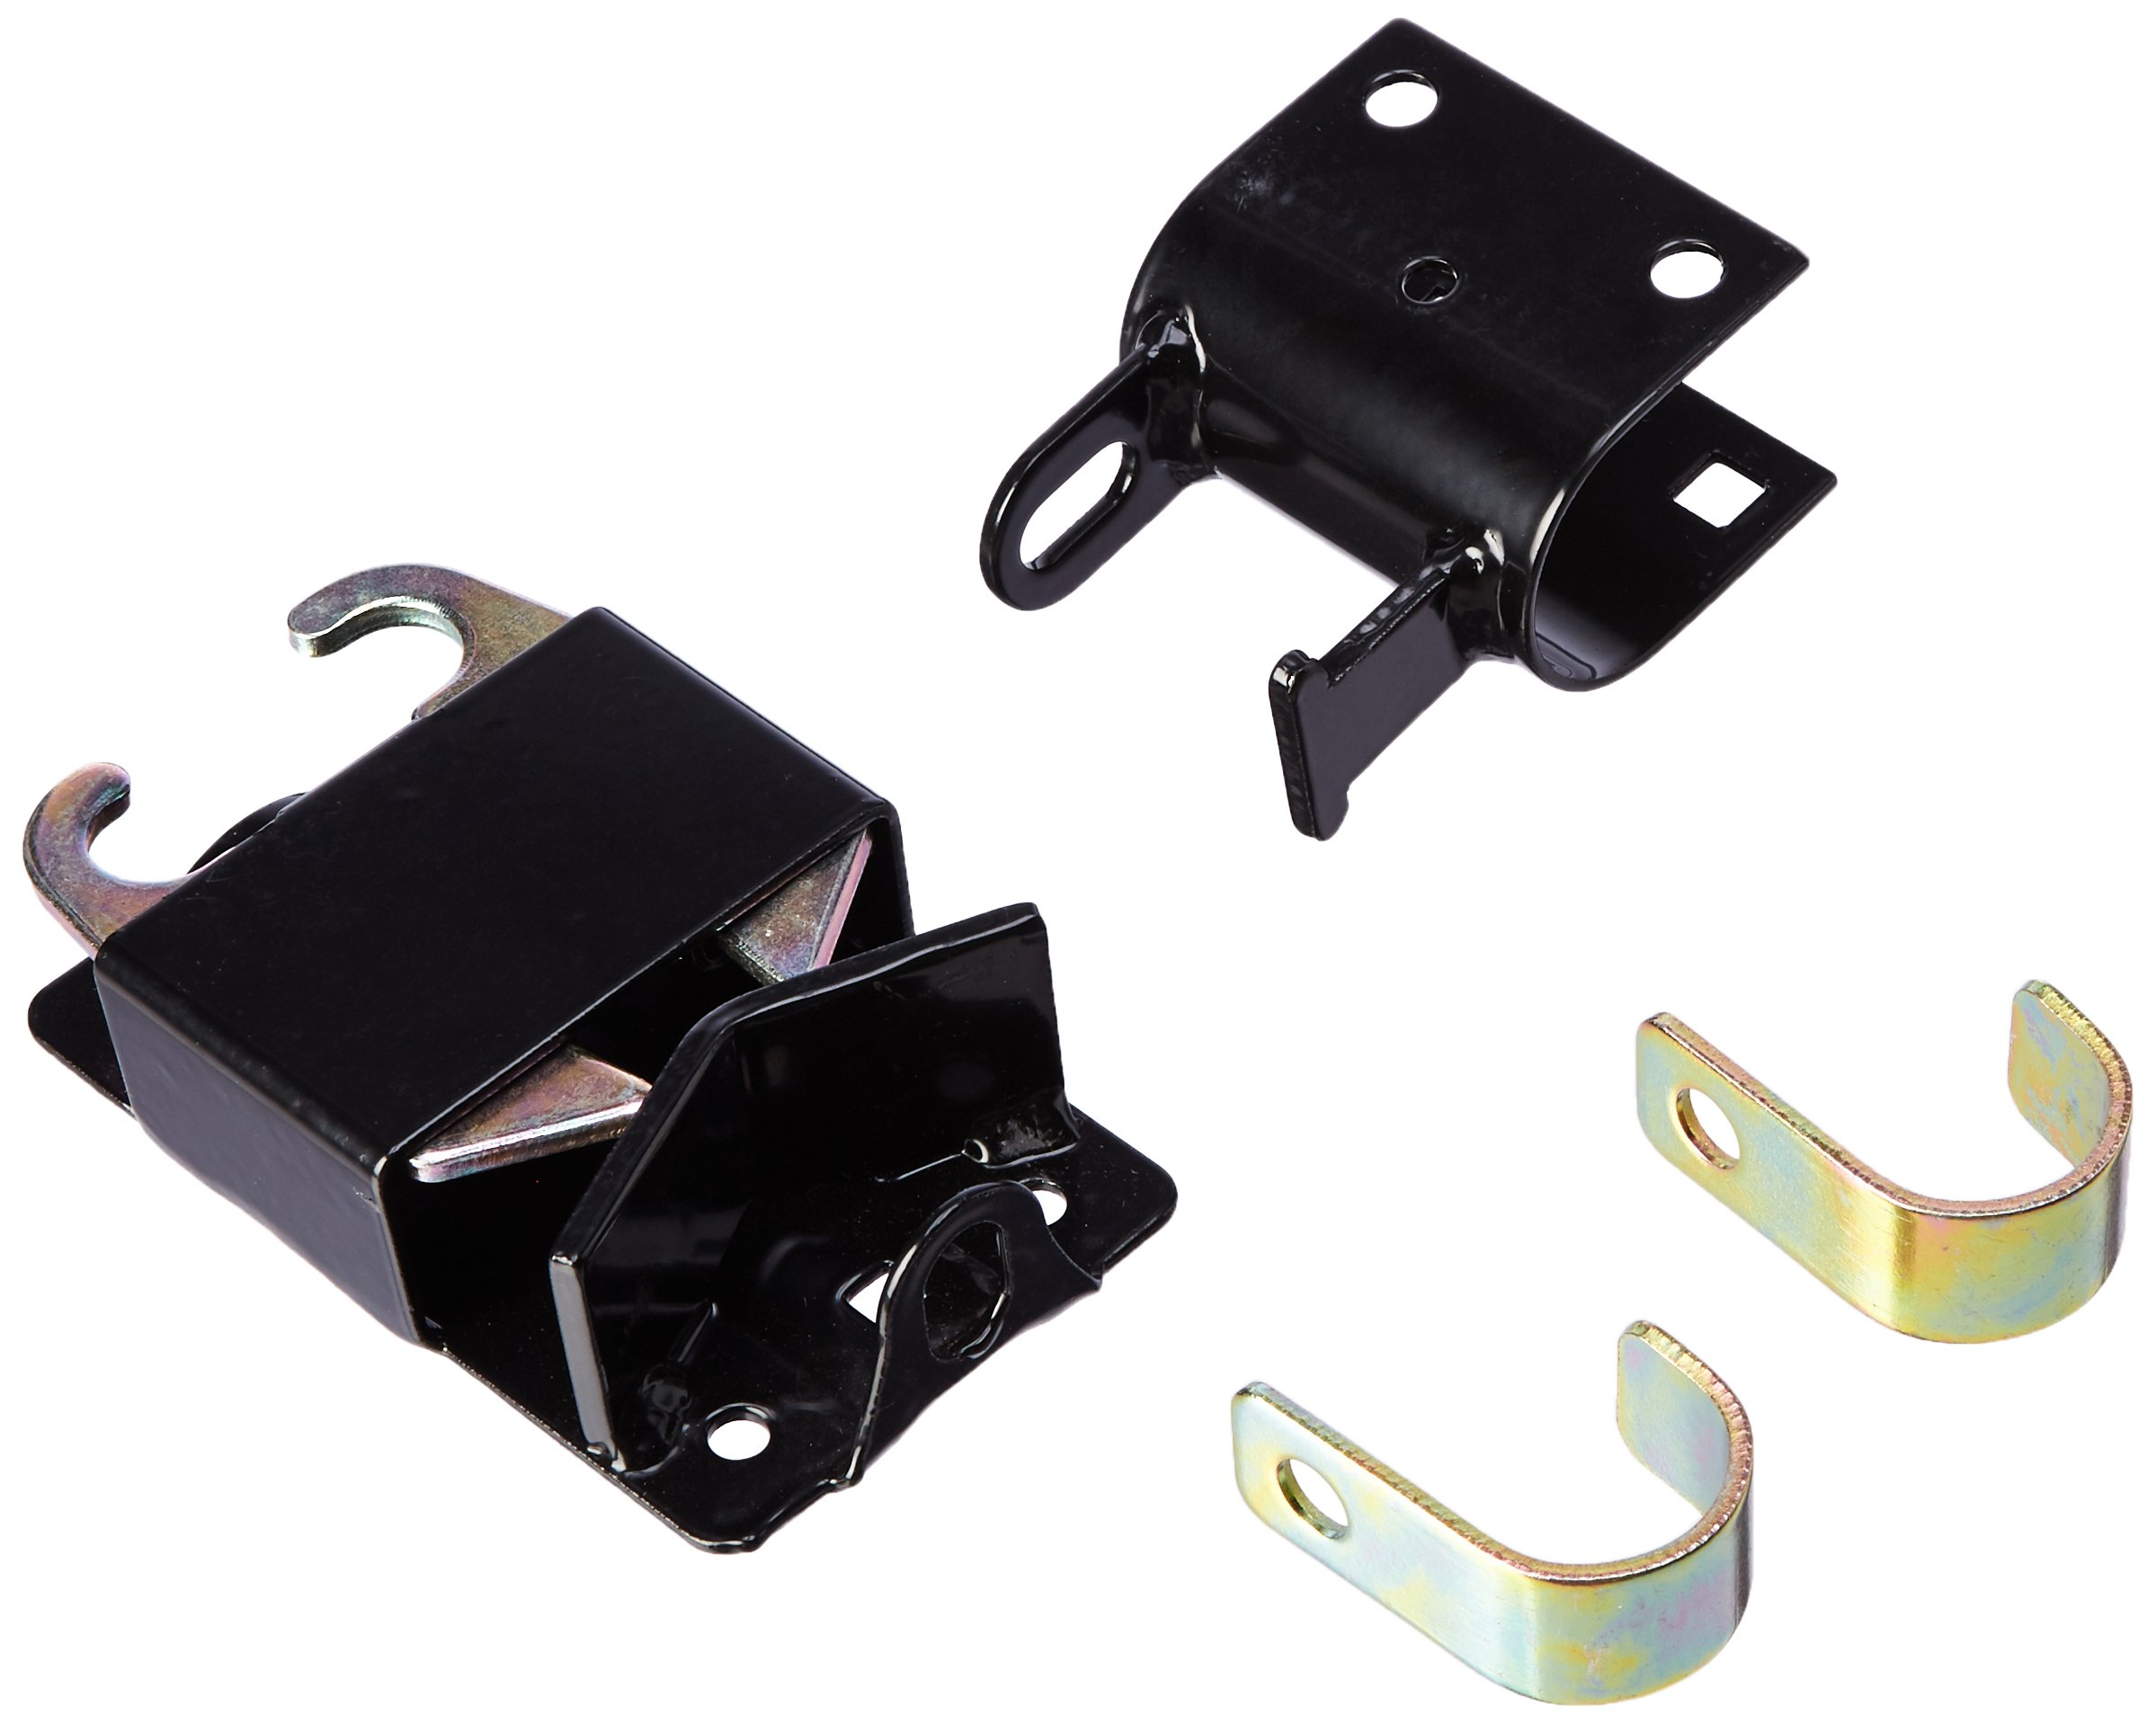 SPECIAL SPEECO PRODUCTS S16100700 2Way Lockable Gate Latch